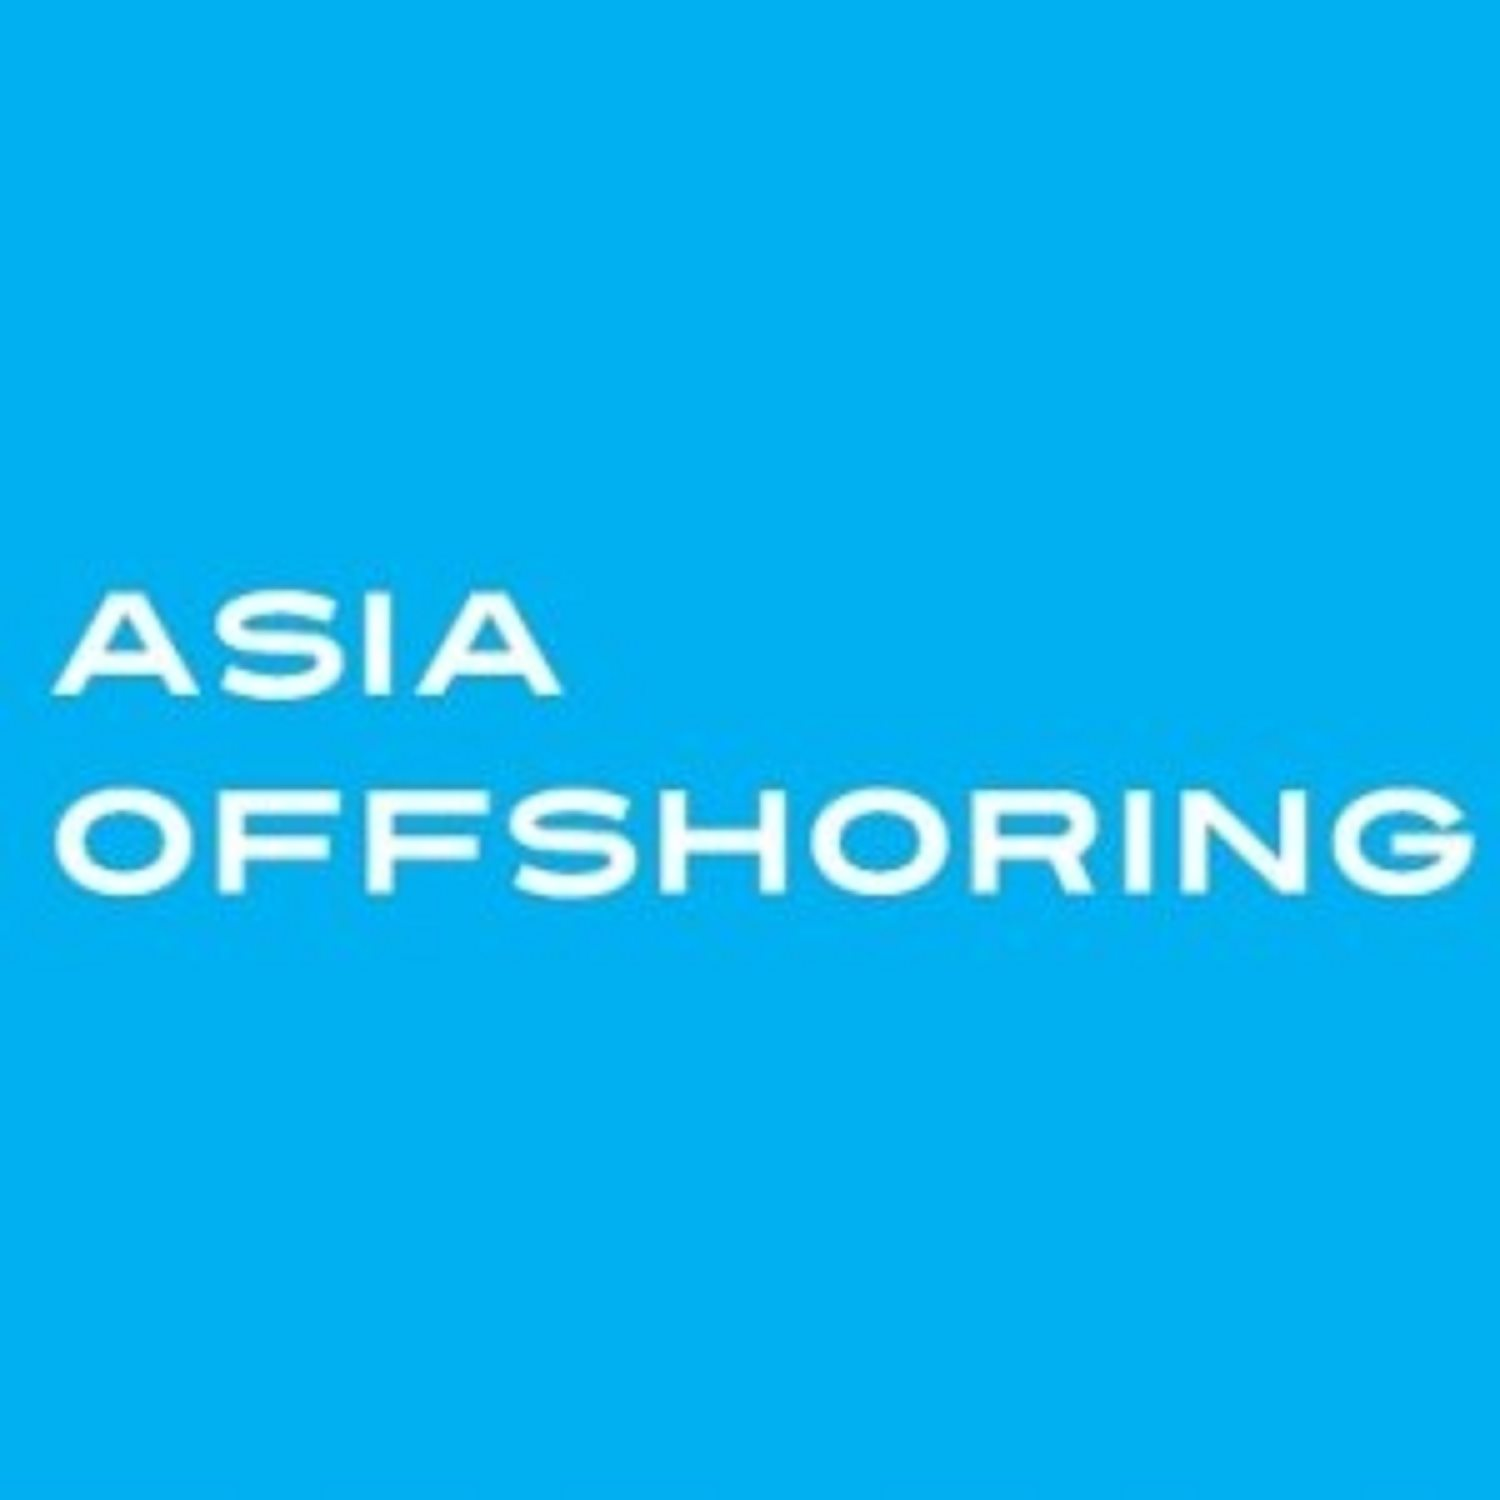 Asia Offshoring Outsourcing Services Inc.